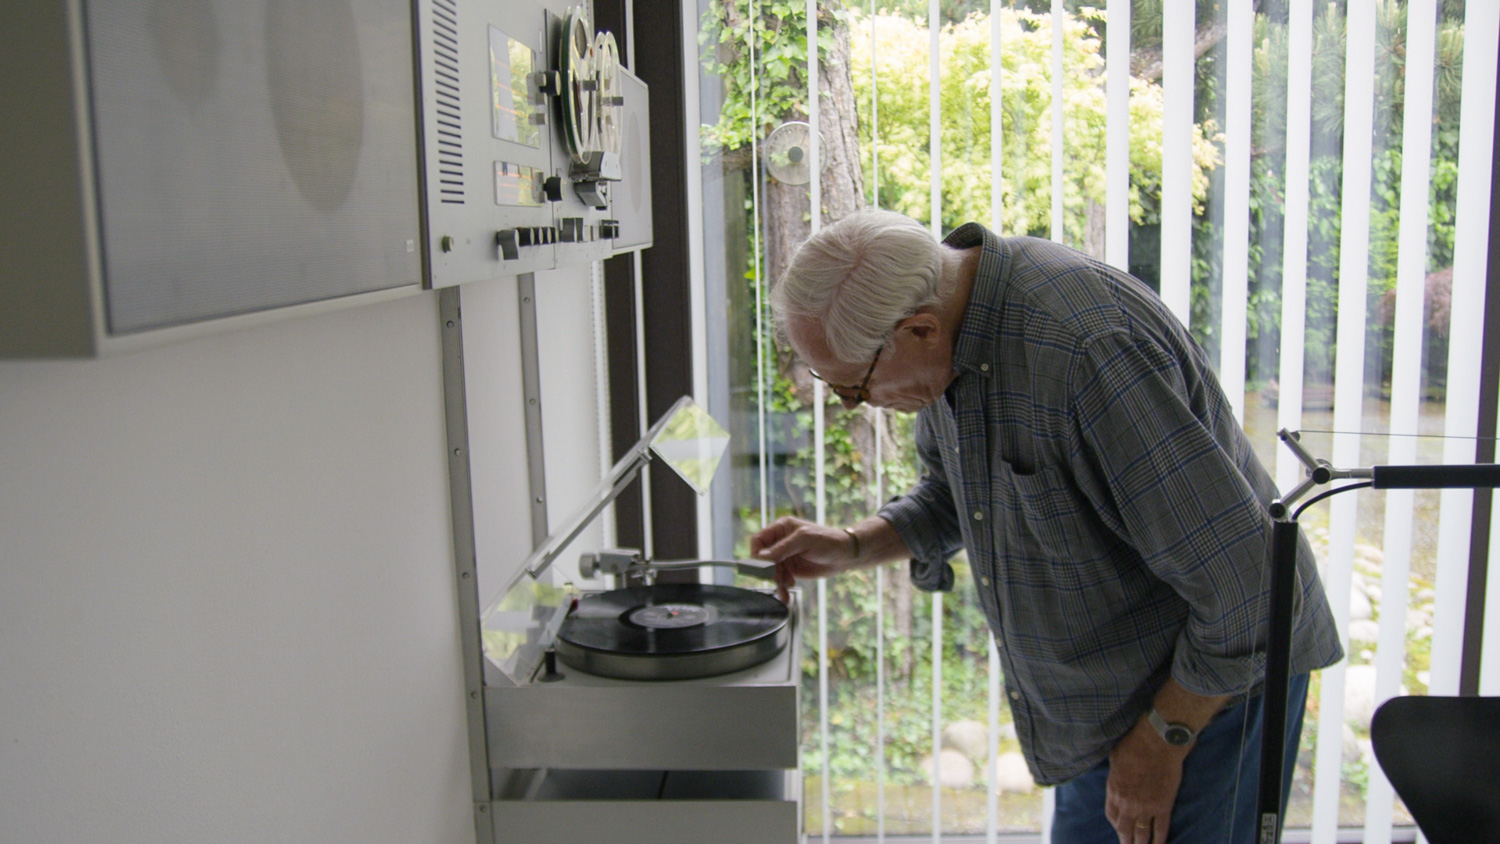 A documentary portrait of Dieter Rams, one of the most influential designers alive —a man of contradictions by design - Coming soon!